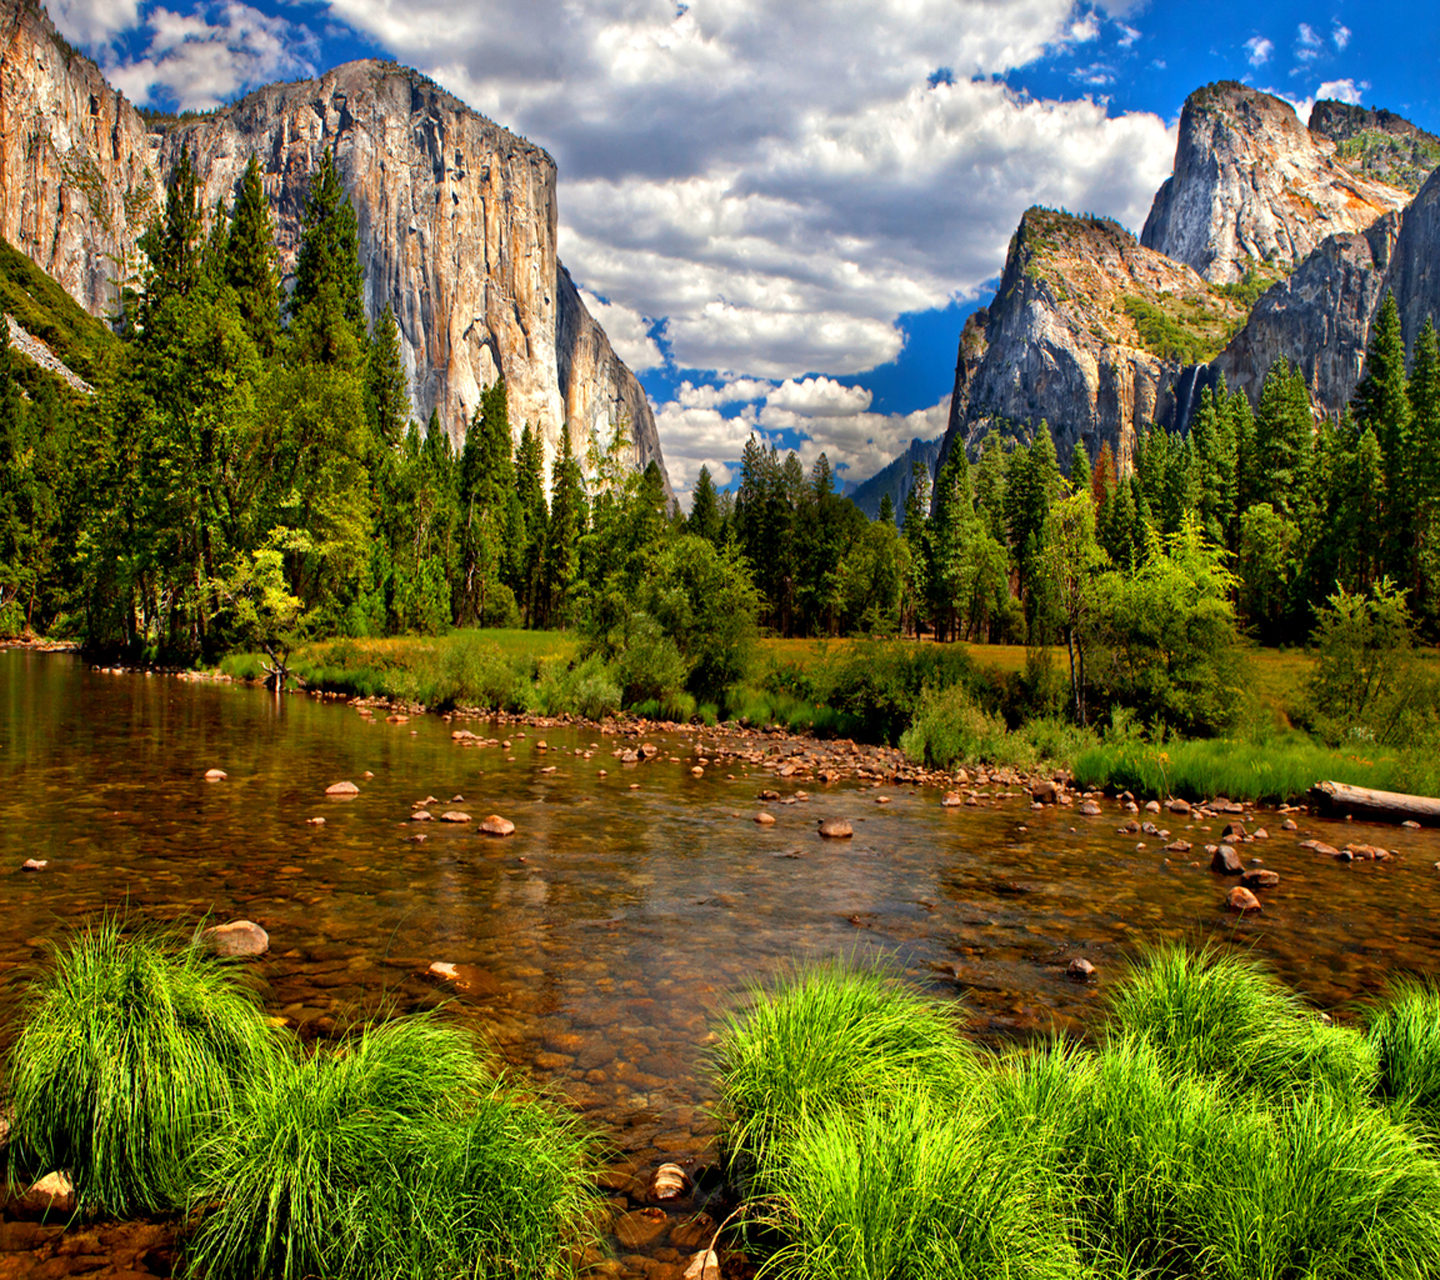 49 mountain screensavers and wallpapers on wallpapersafari - Mountain screensavers free ...